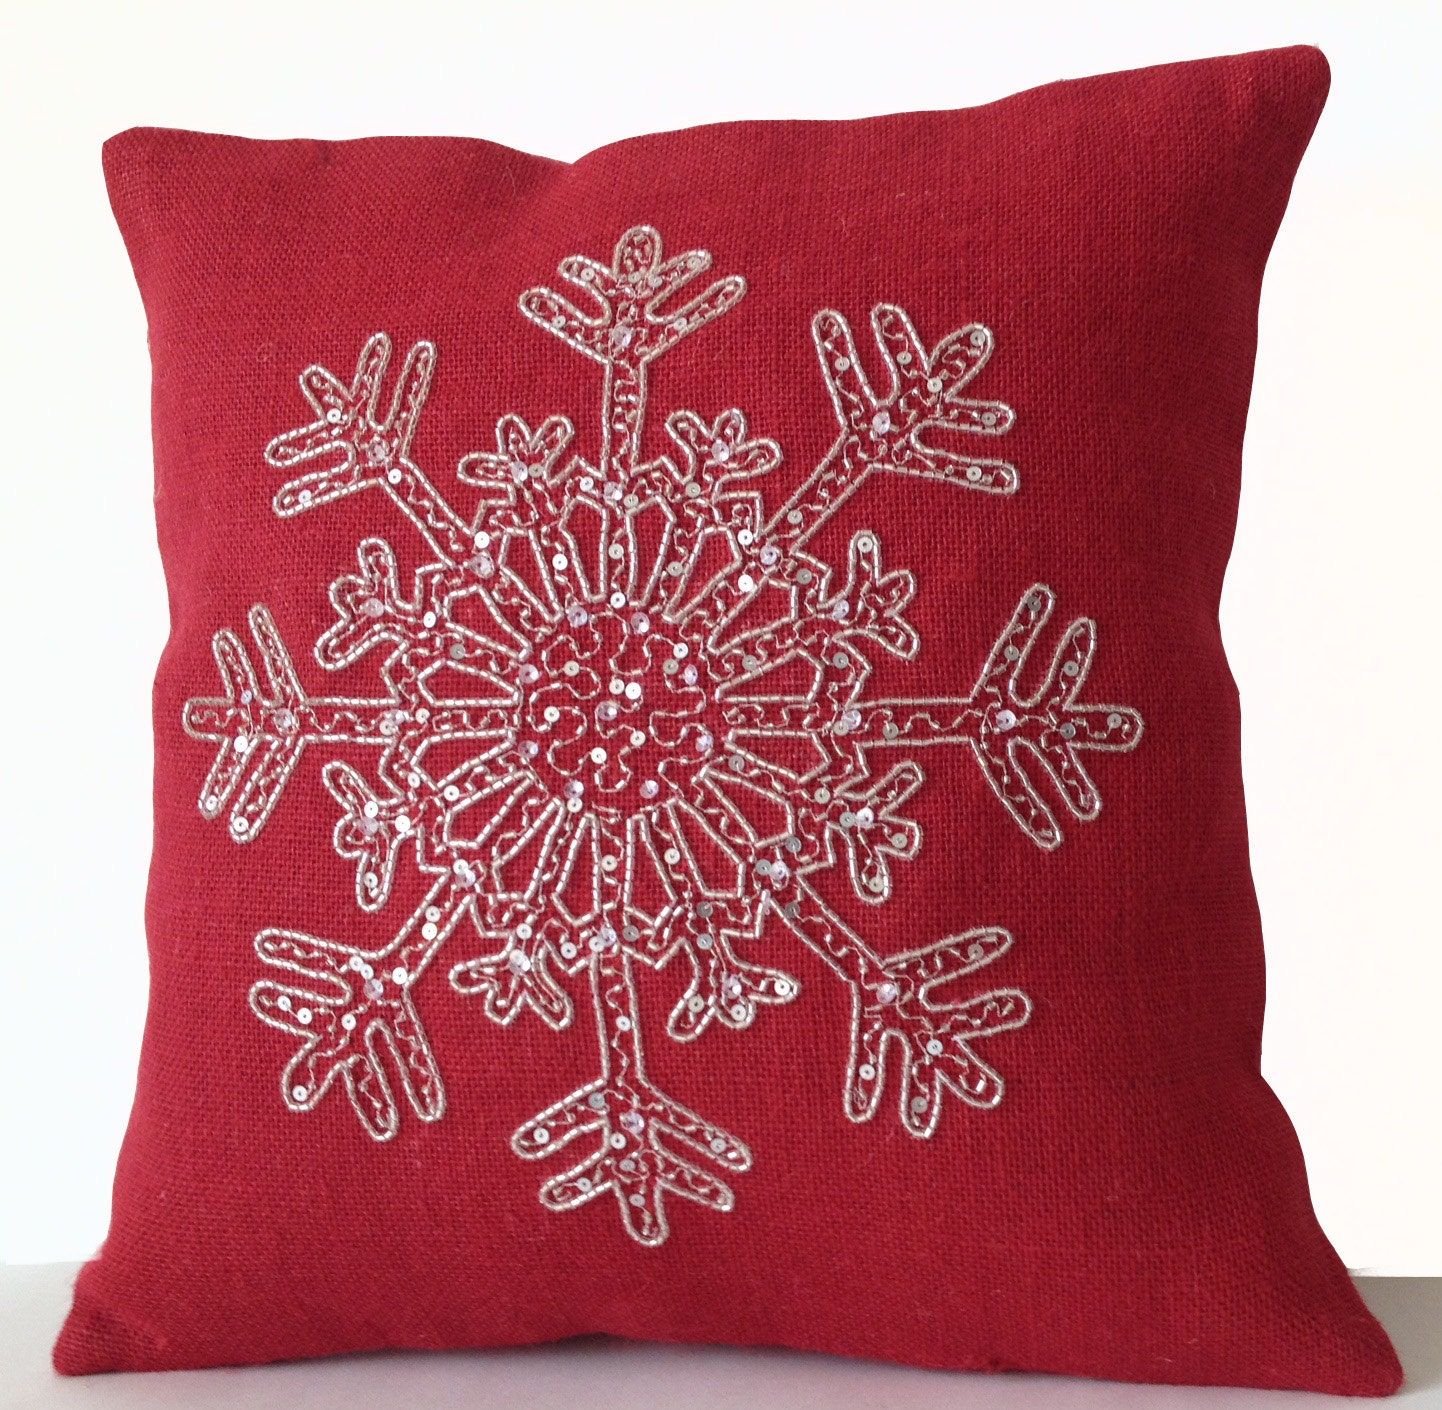 Christmas Pillow Cover Snow Flake Pillow Red Burlap Pillows